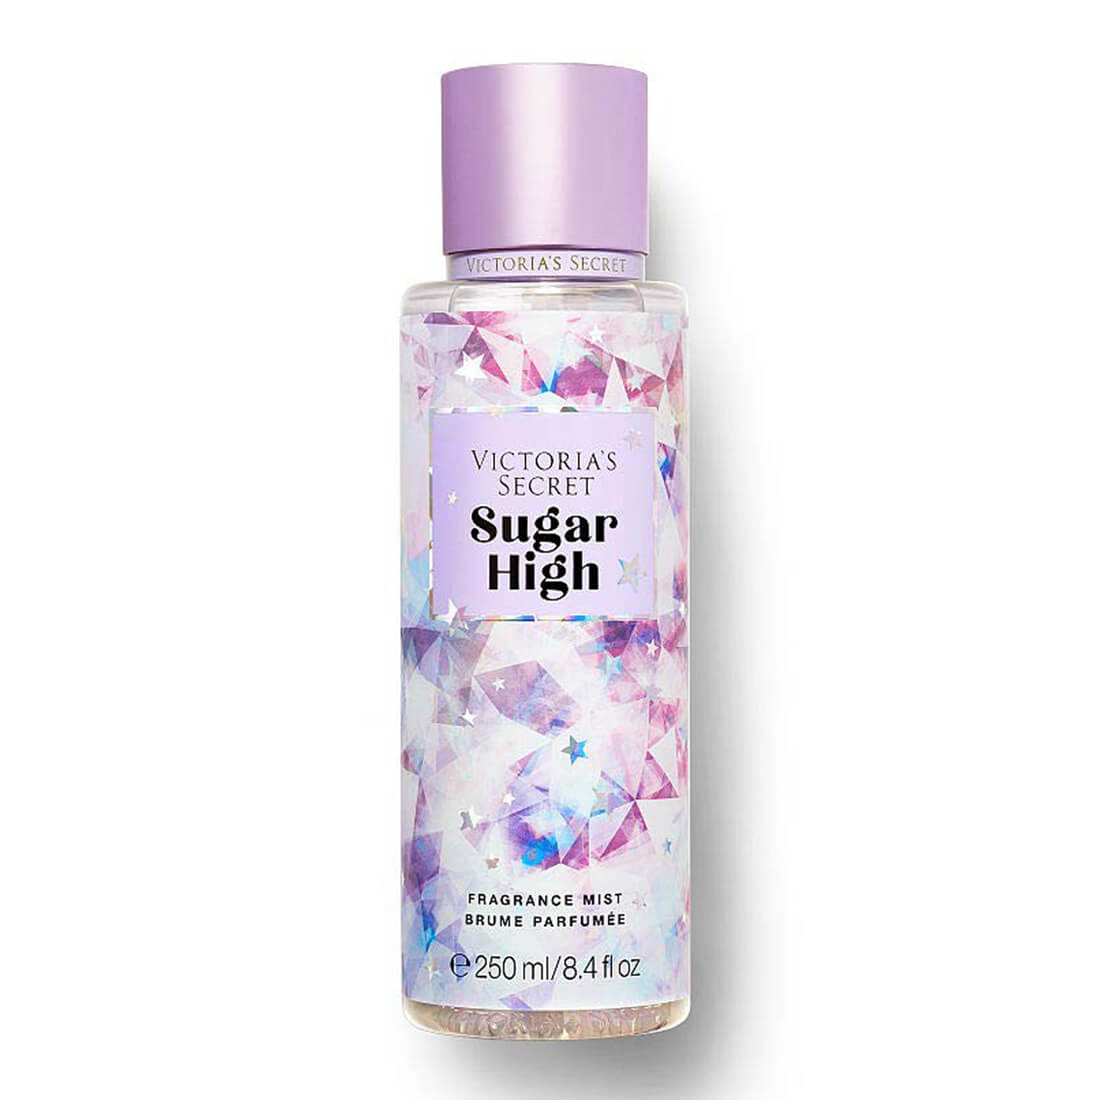 Victoria's Secret Sugar High Fragrance Mist 250ml